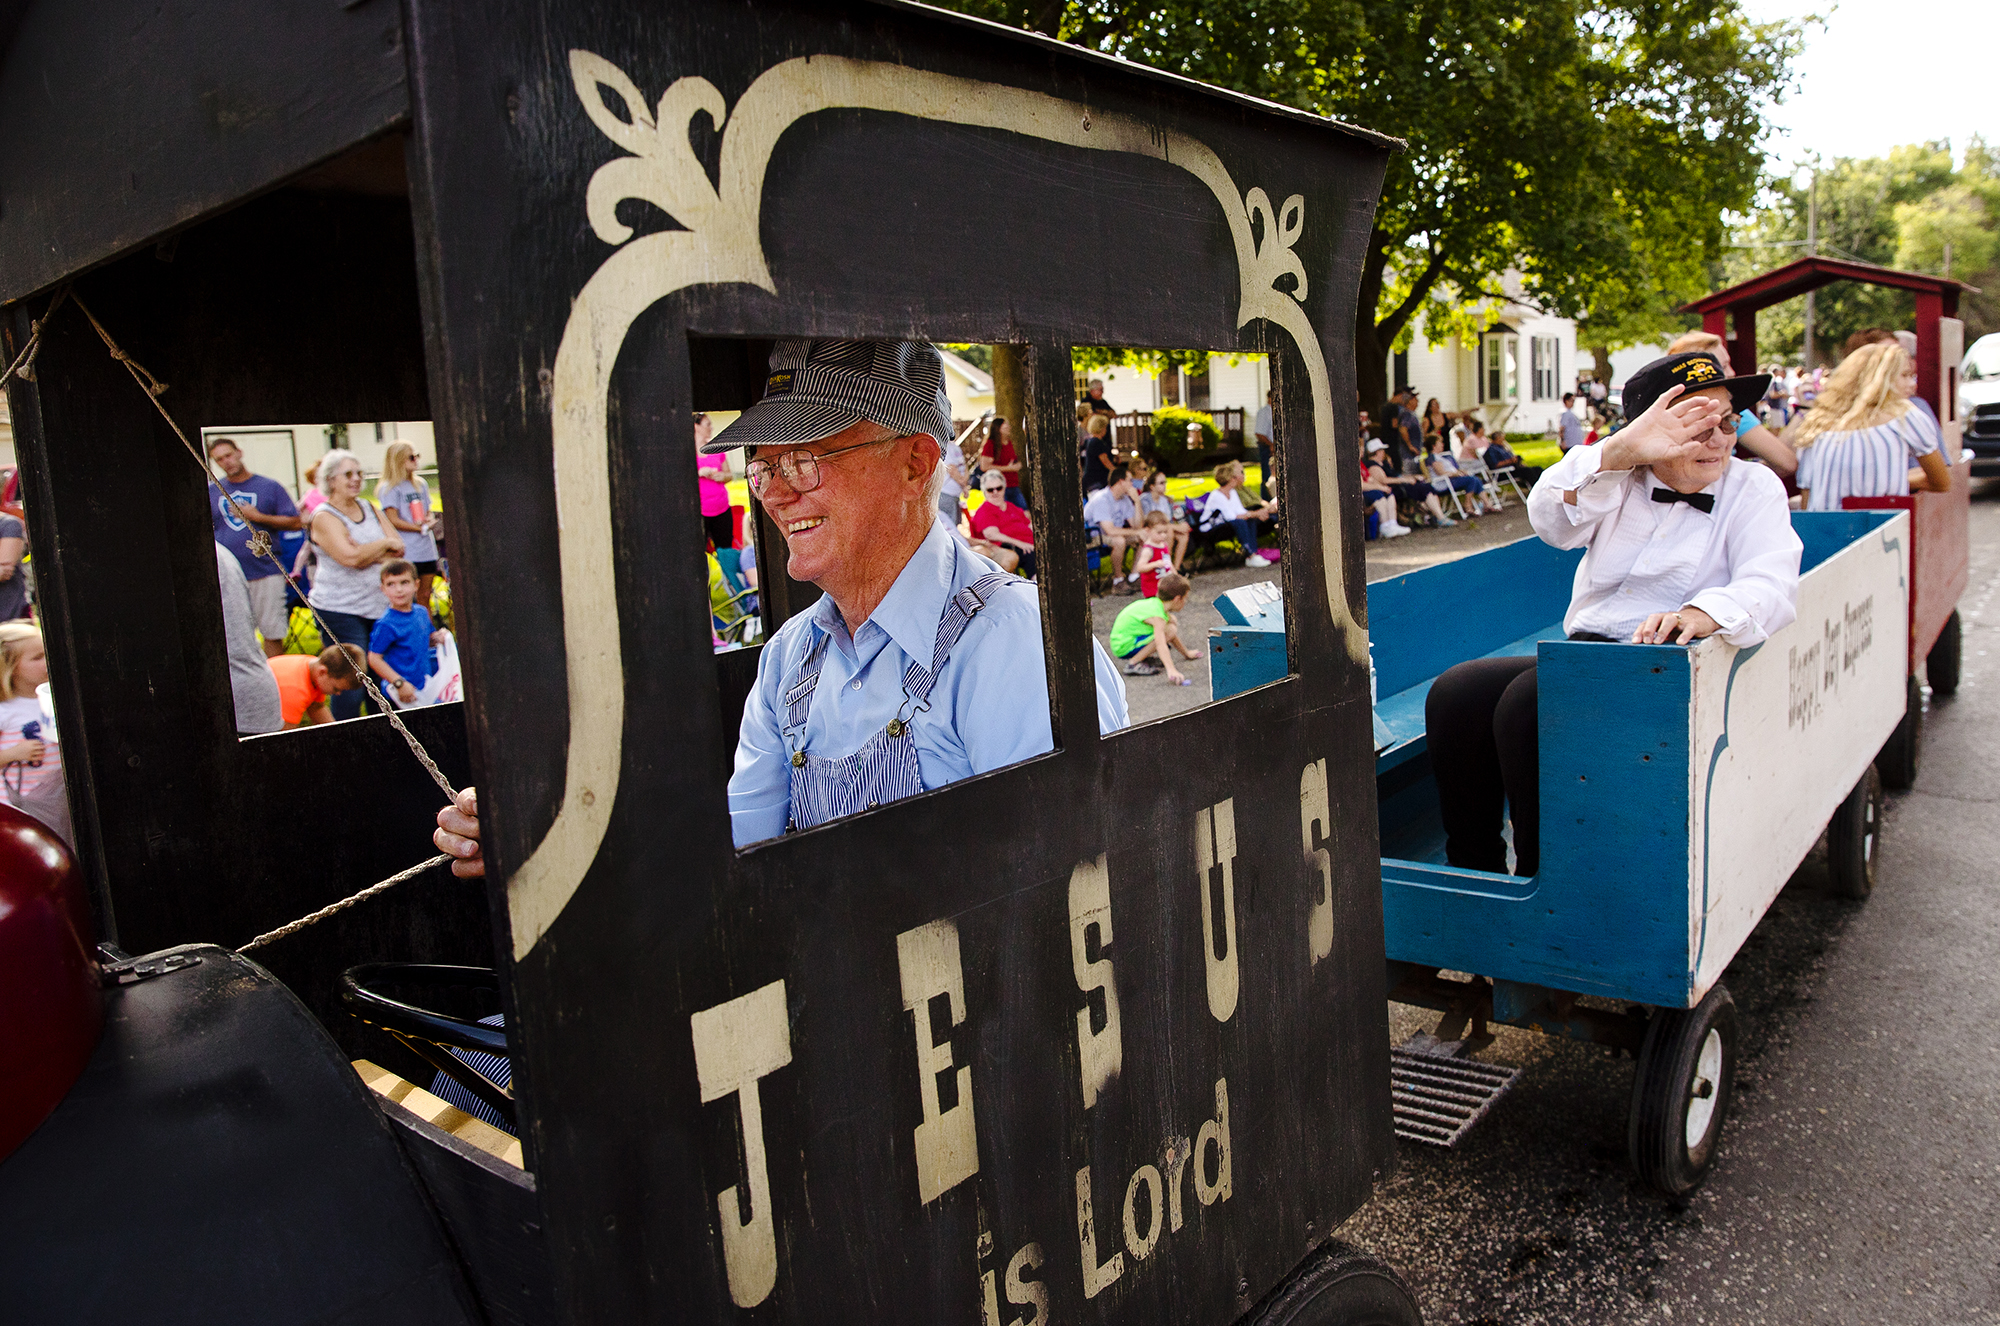 Bob Swaar drives the First Baptist Church of Greenview's parade float during the 50th Annual Greenview Labor Day Celebration Monday, Sept. 3, 2018. [Ted Schurter/The State Journal-Register]